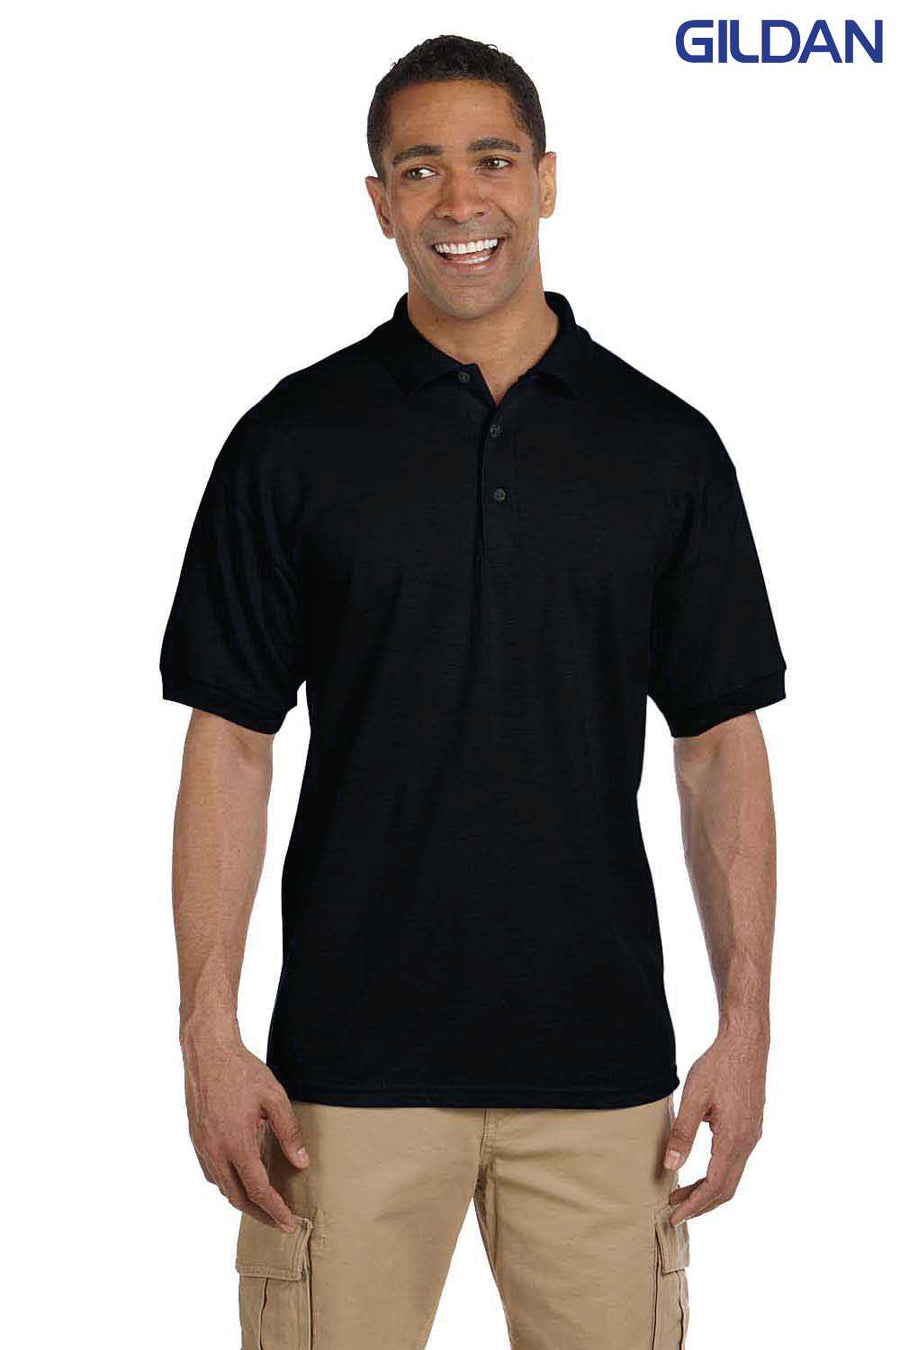 Gildan Mens Ultra Cotton Pique Short Sleeve Polo Shirt G380